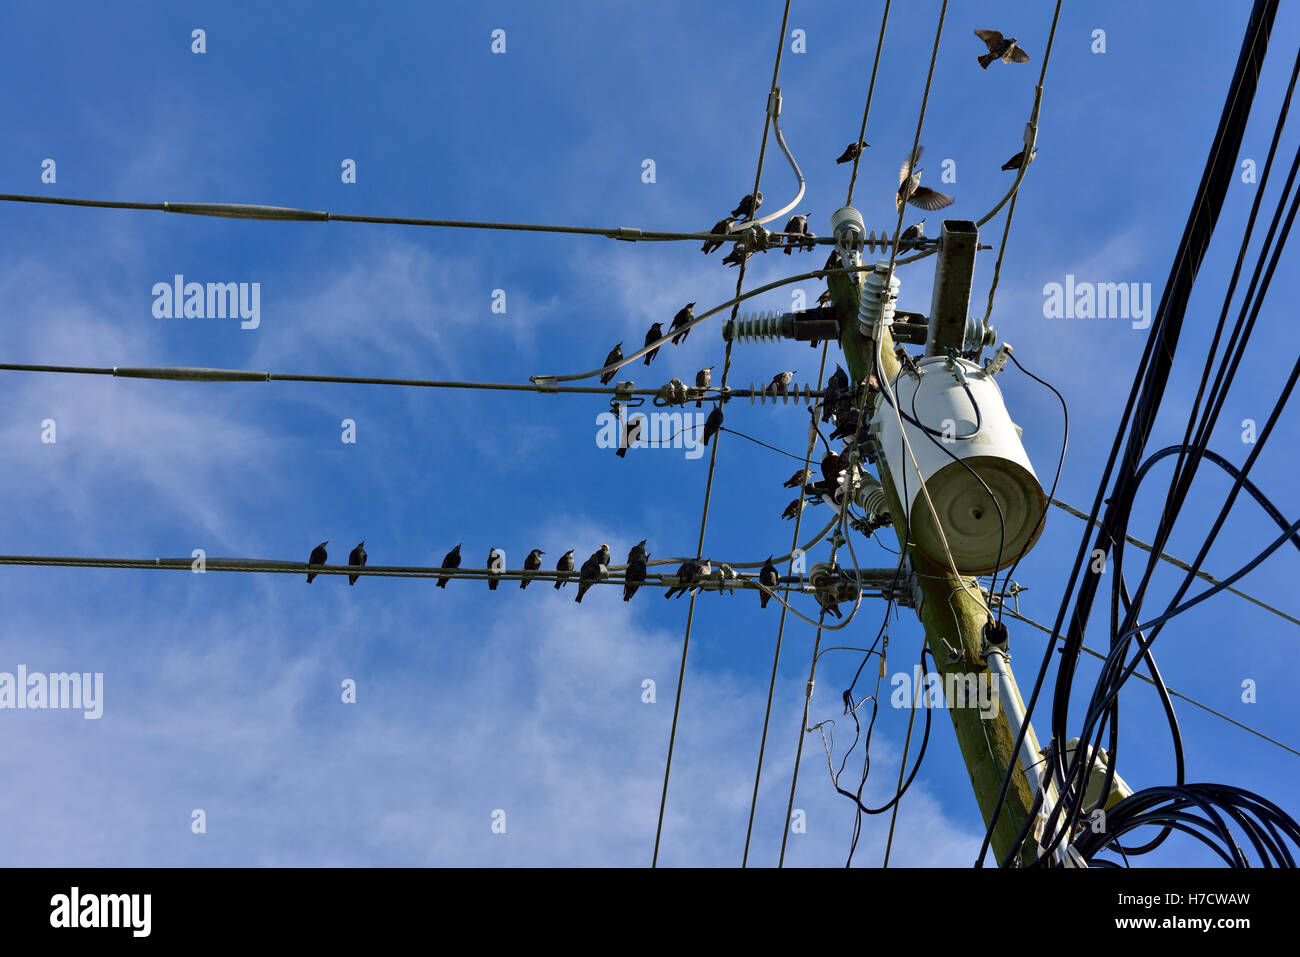 Birds On Wires Stock Photos & Birds On Wires Stock Images - Alamy